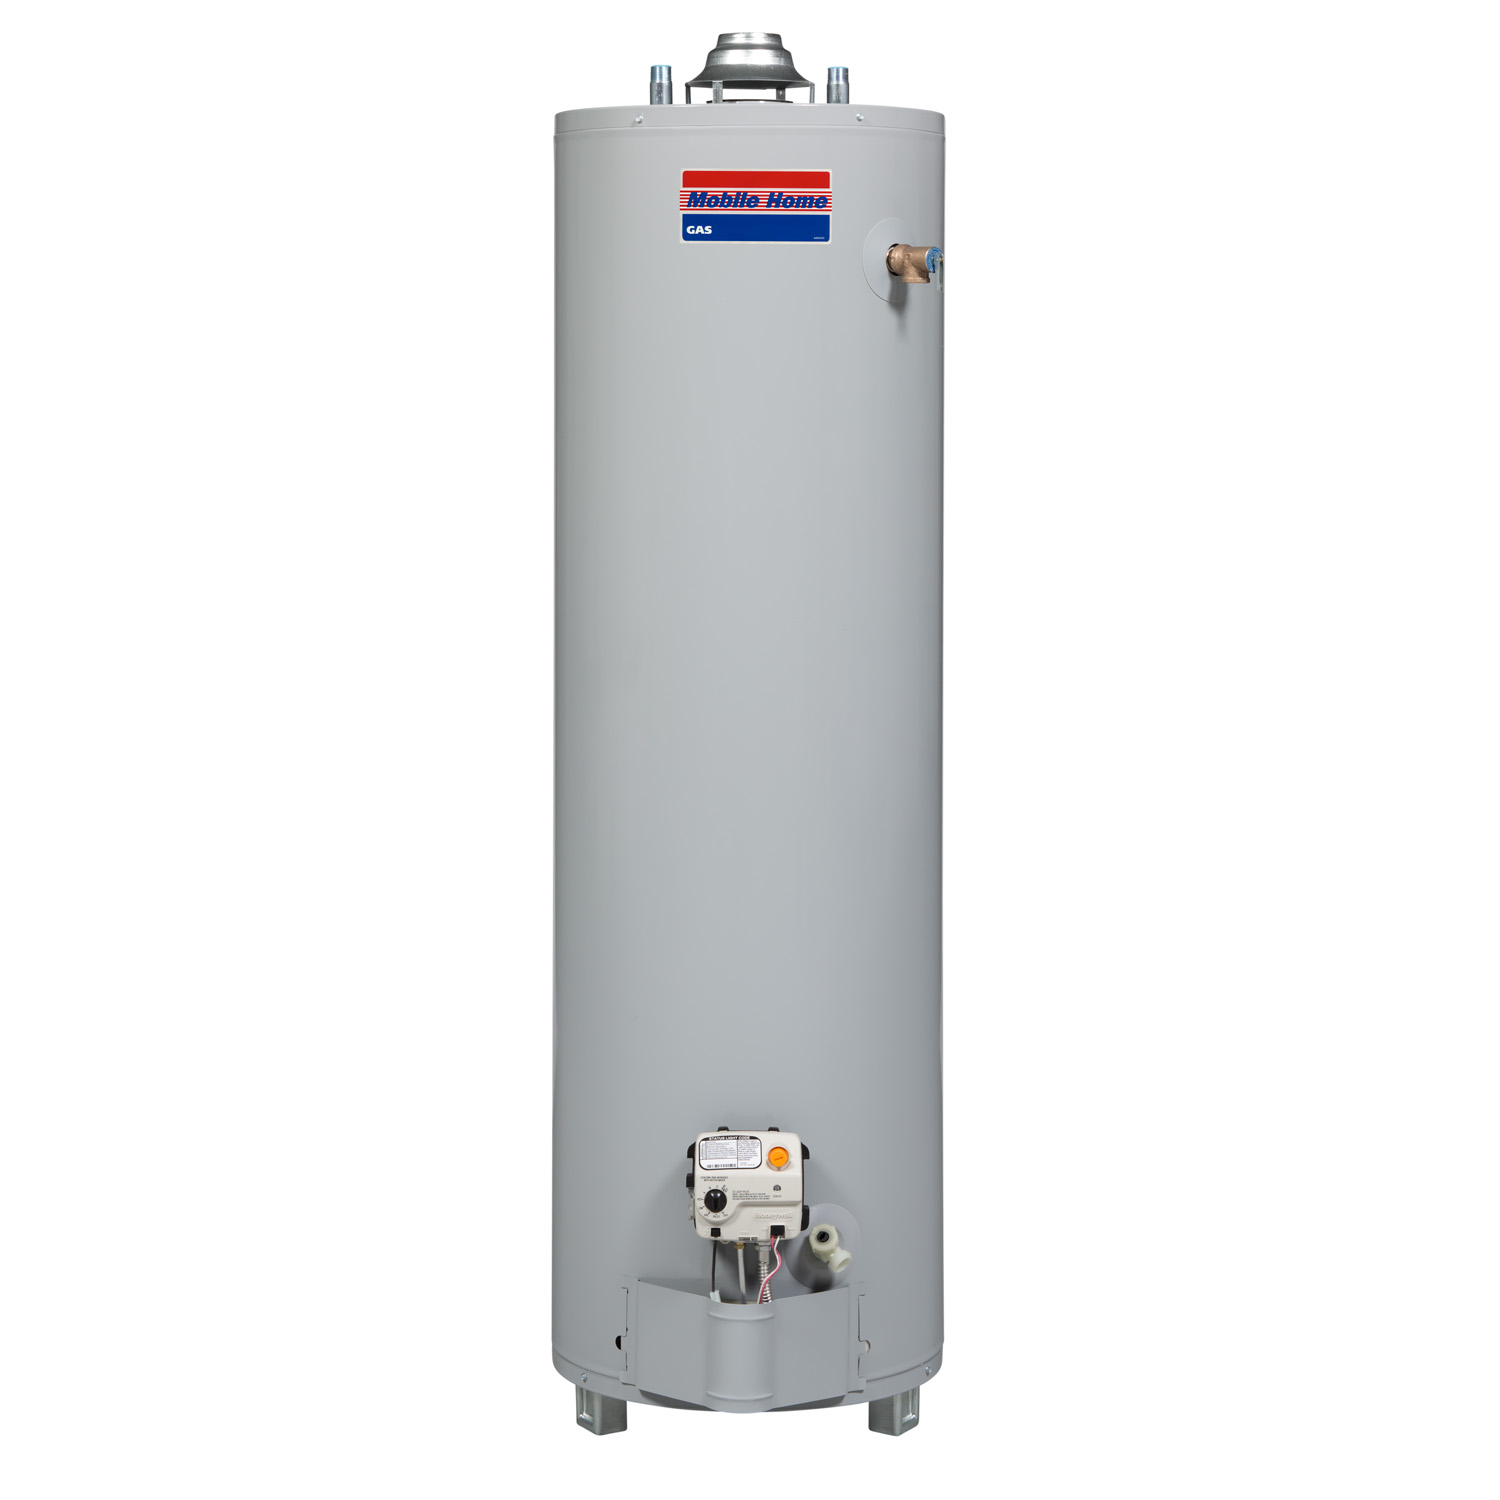 Media Bank U S Craftmaster Water Heaters